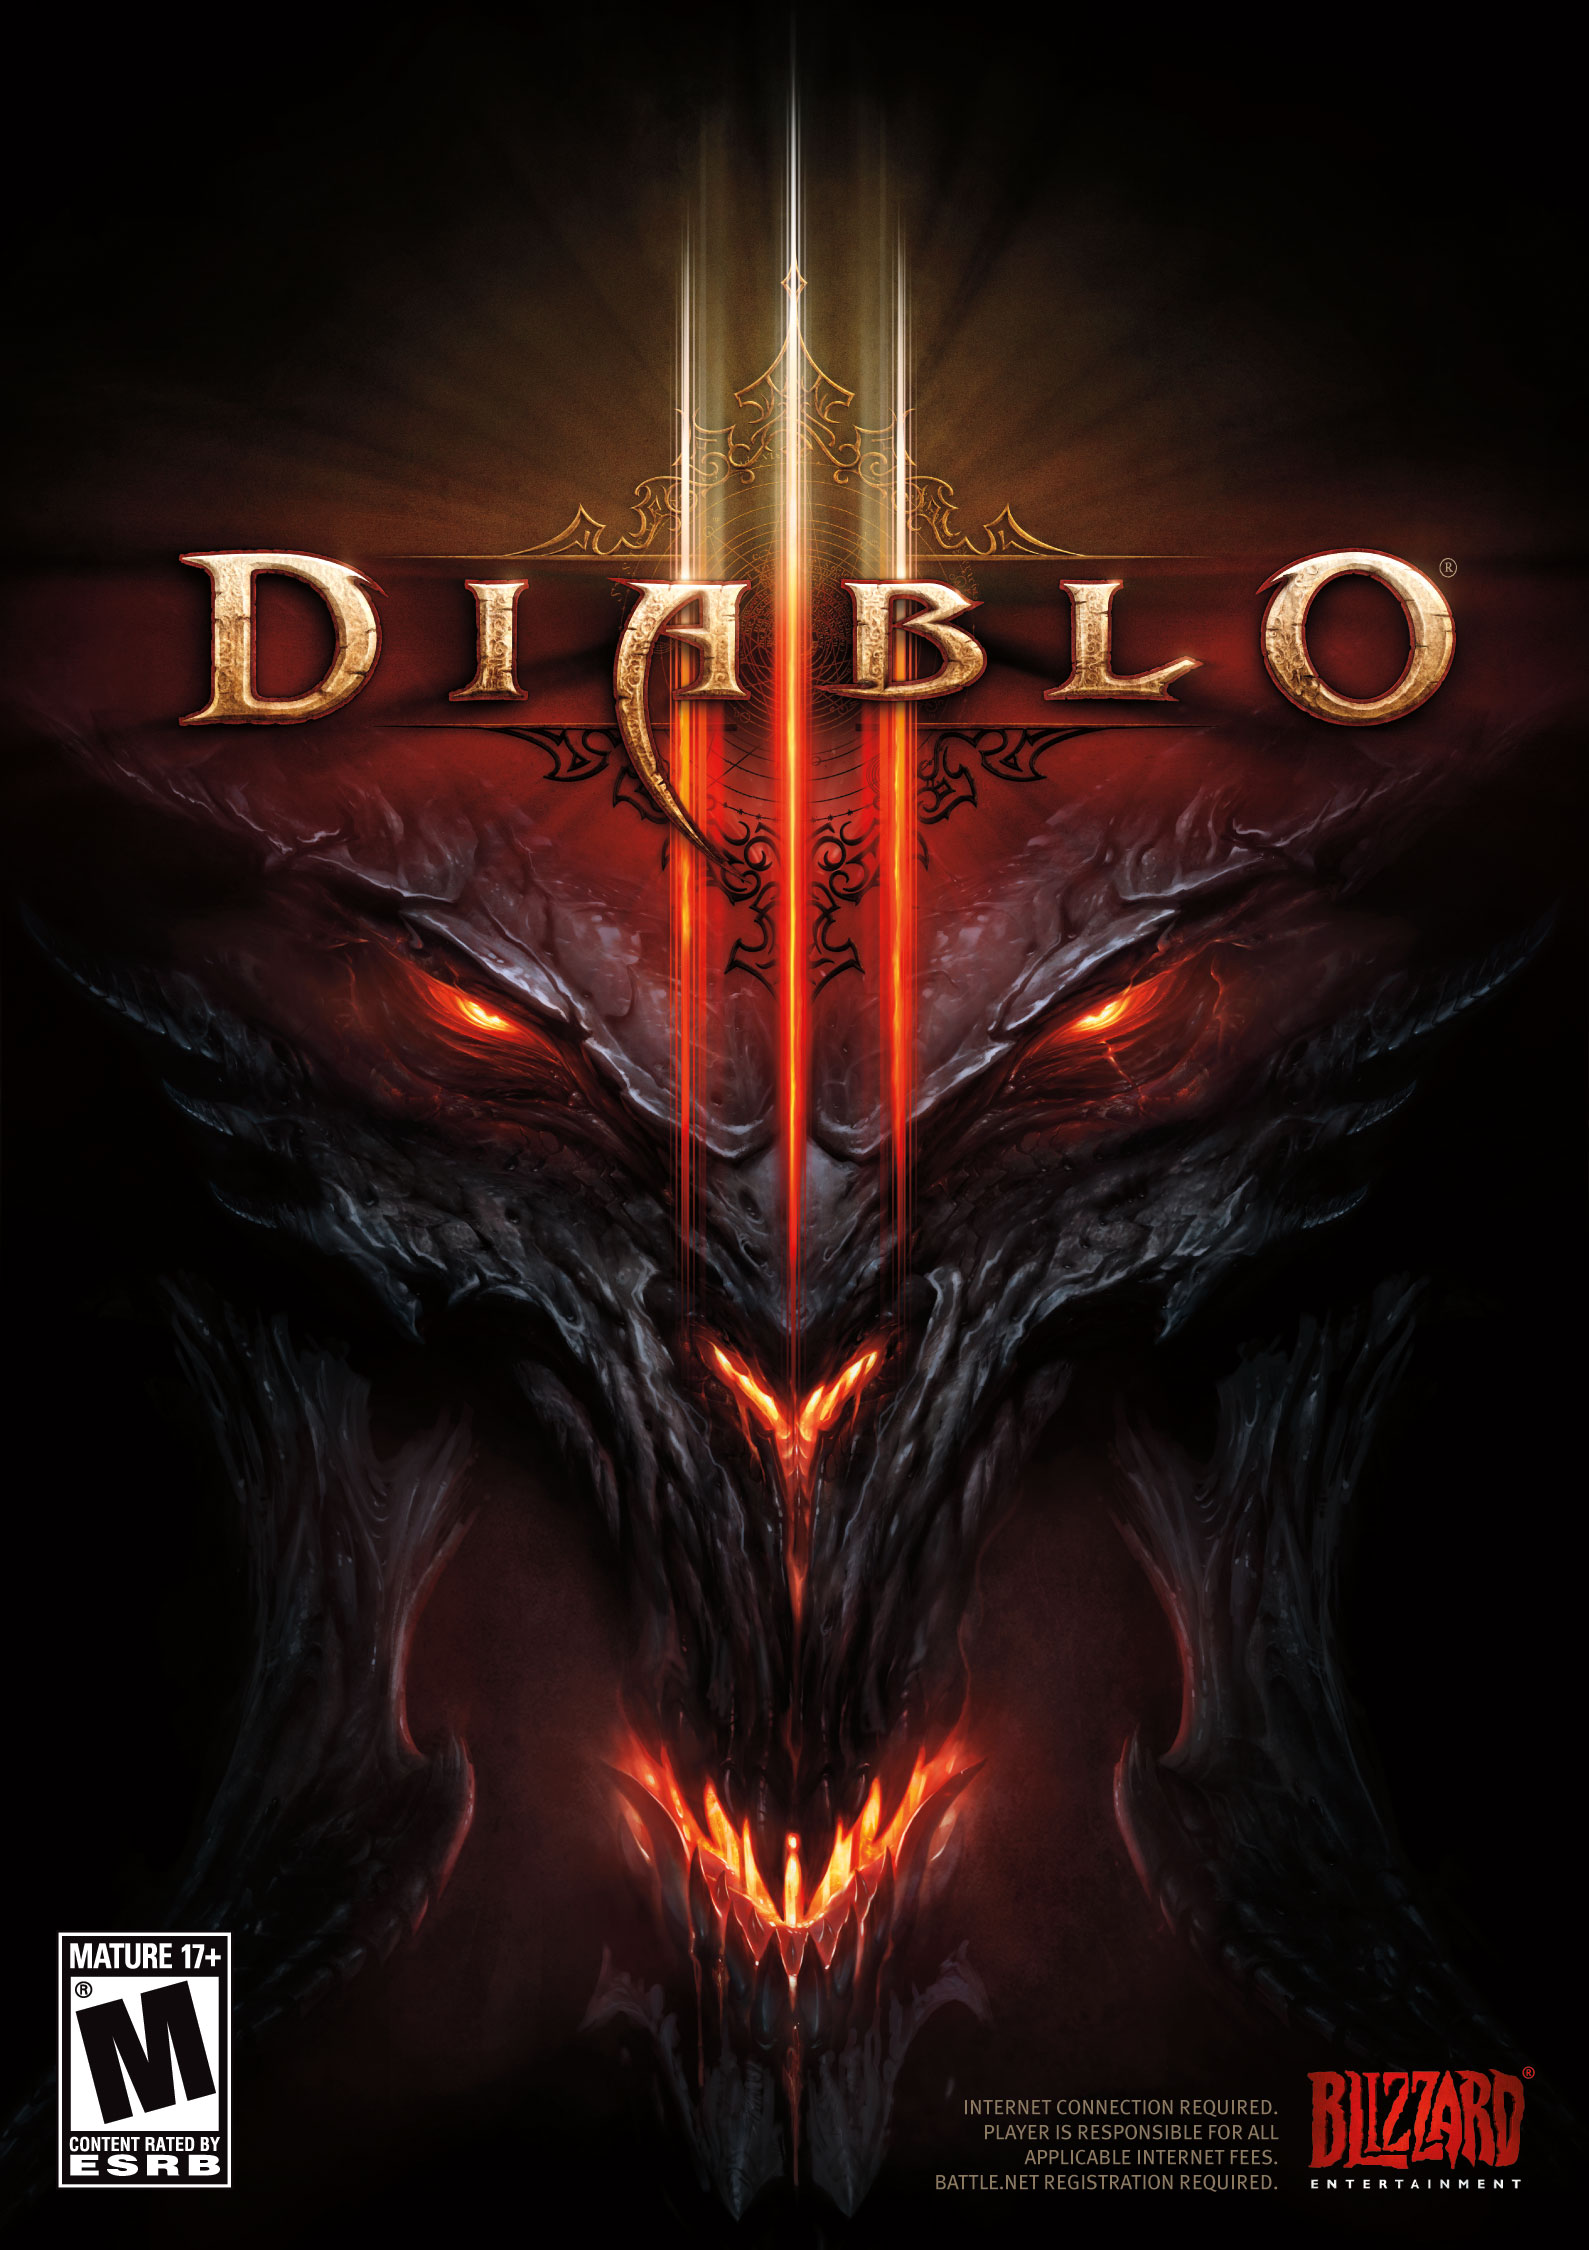 Diablo III - PC/Mac [Digital Code] by Blizzard Entertainment